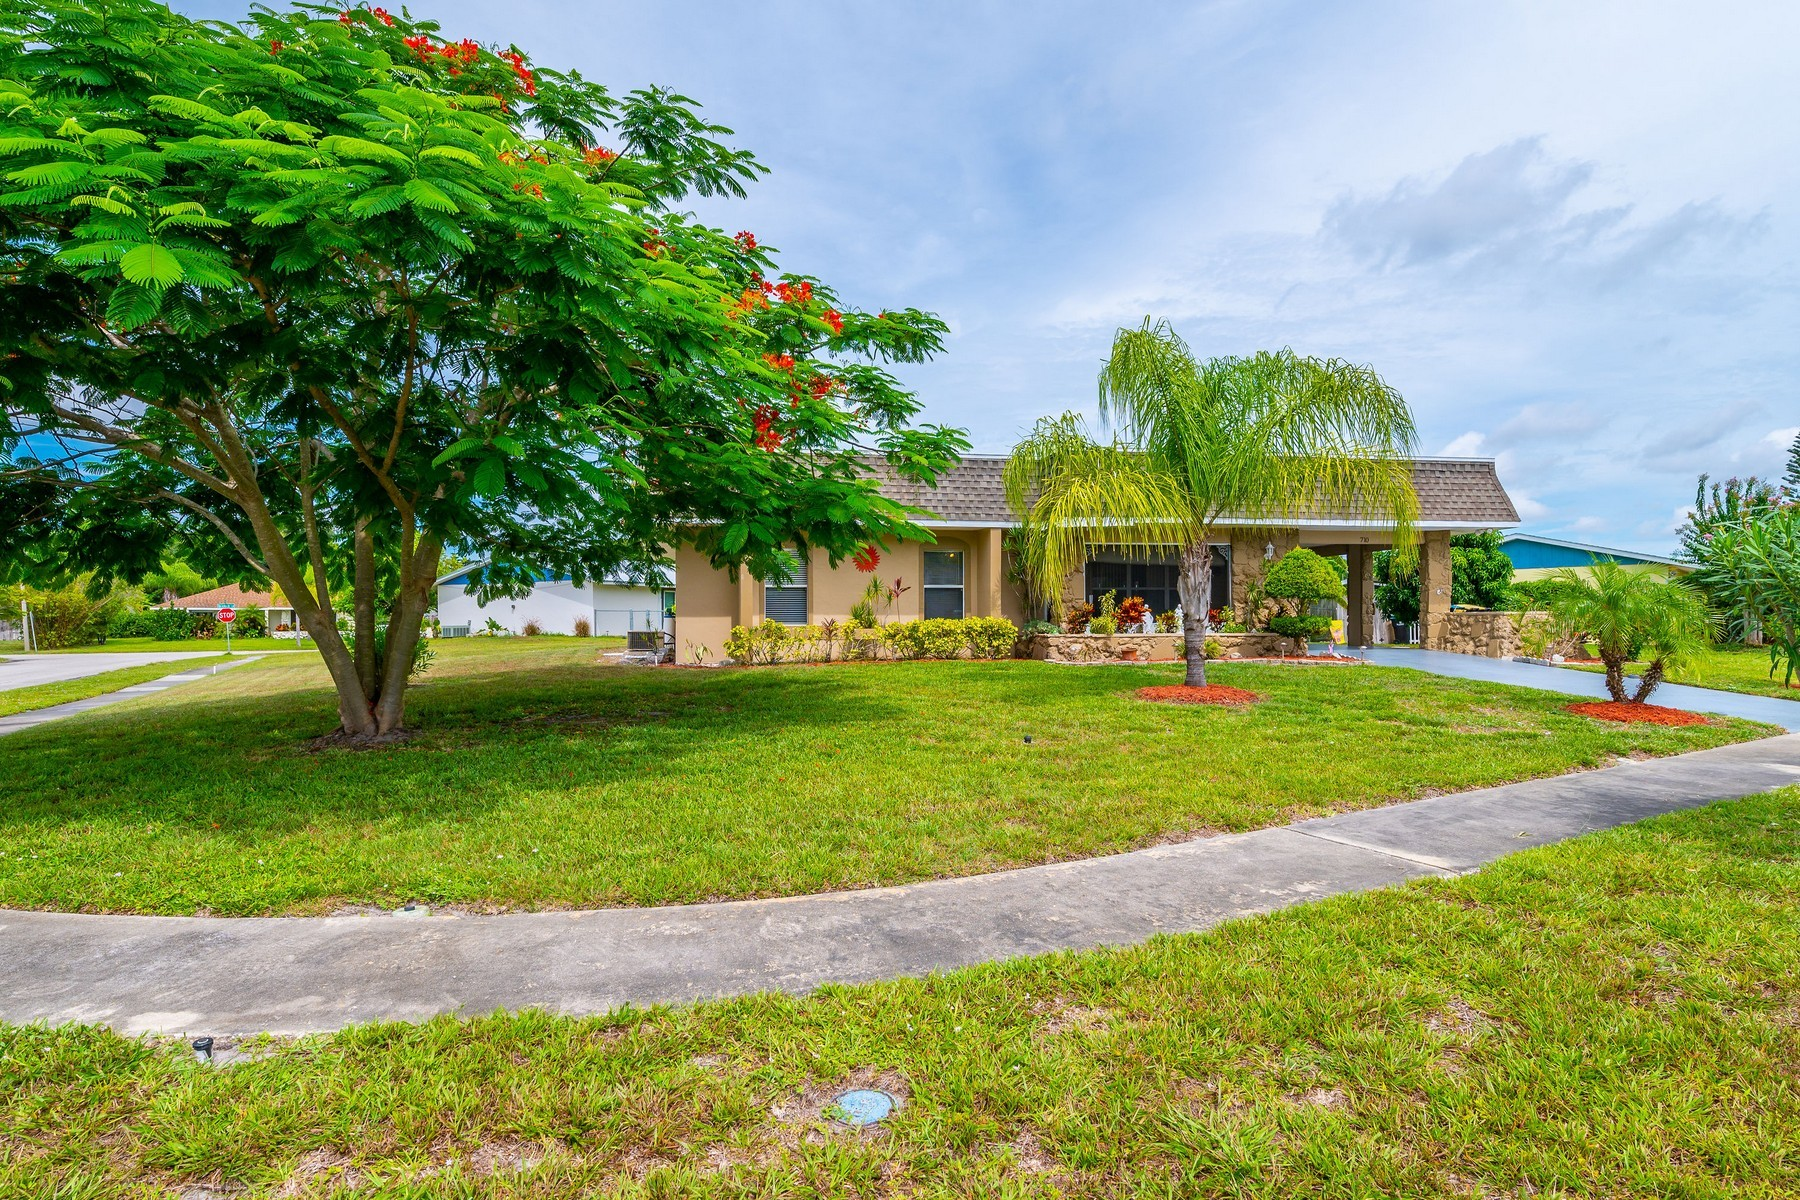 Single Family Homes for Active at Nicely Maintained Home in Prime Location 710 Cobblestone Lane NE Palm Bay, Florida 32905 United States